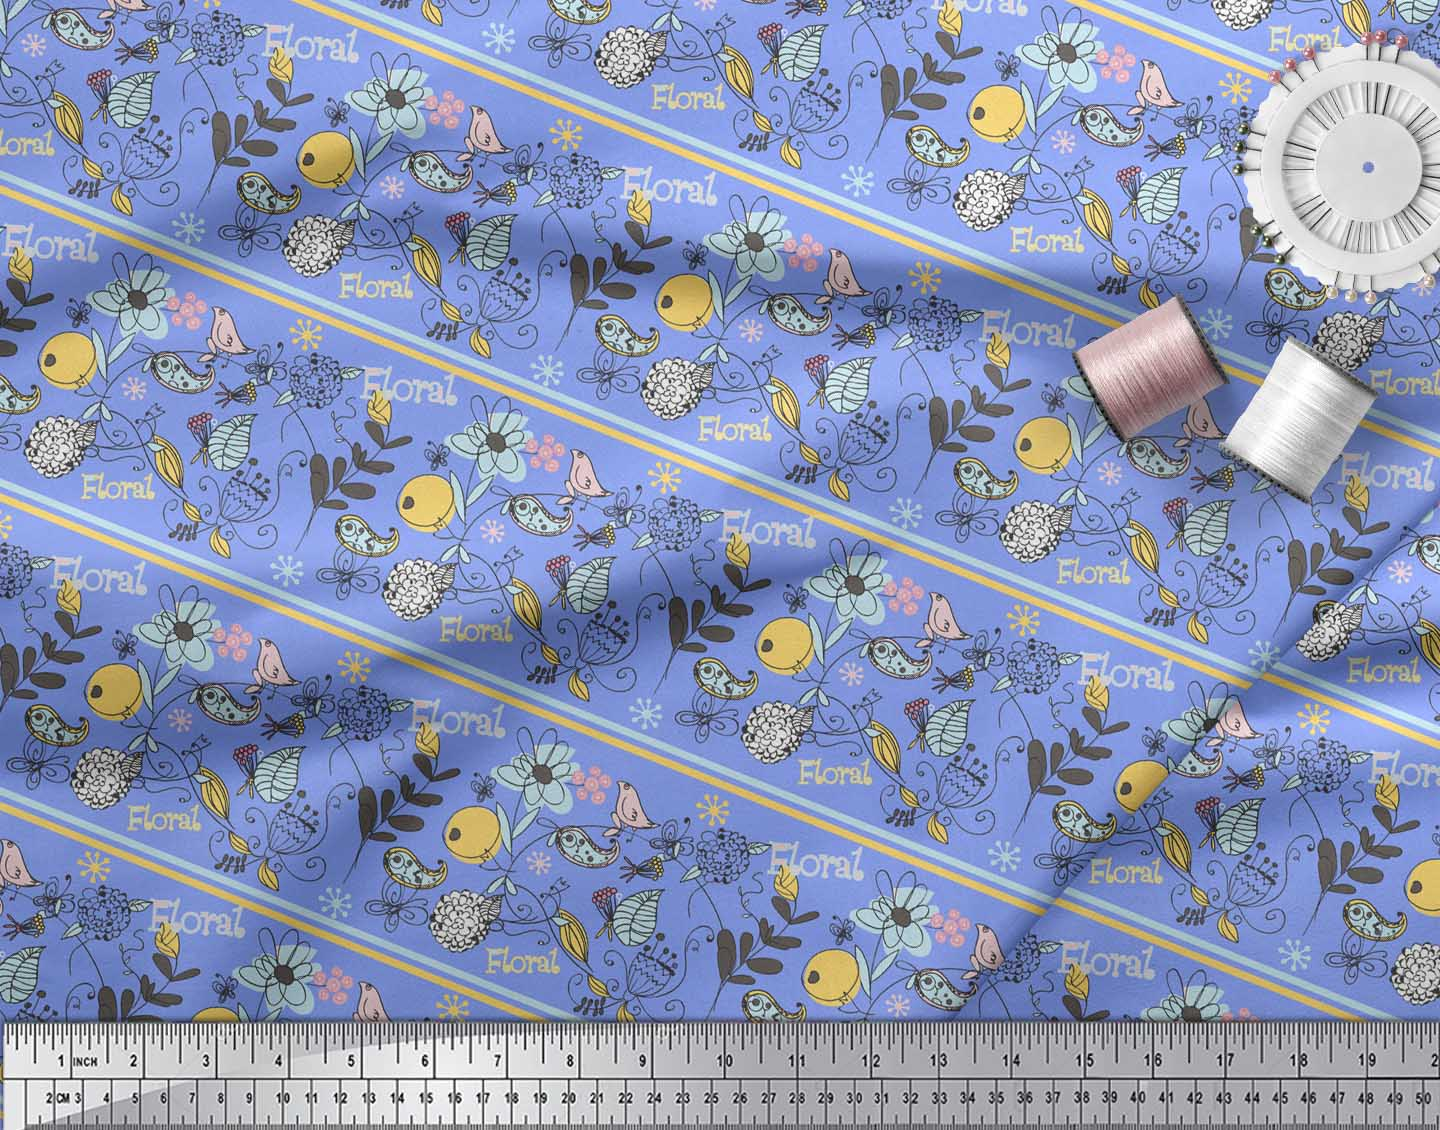 Soimoi-Blue-Cotton-Poplin-Fabric-Stripe-Floral-amp-Bird-Artistic-Printed-ISE thumbnail 3